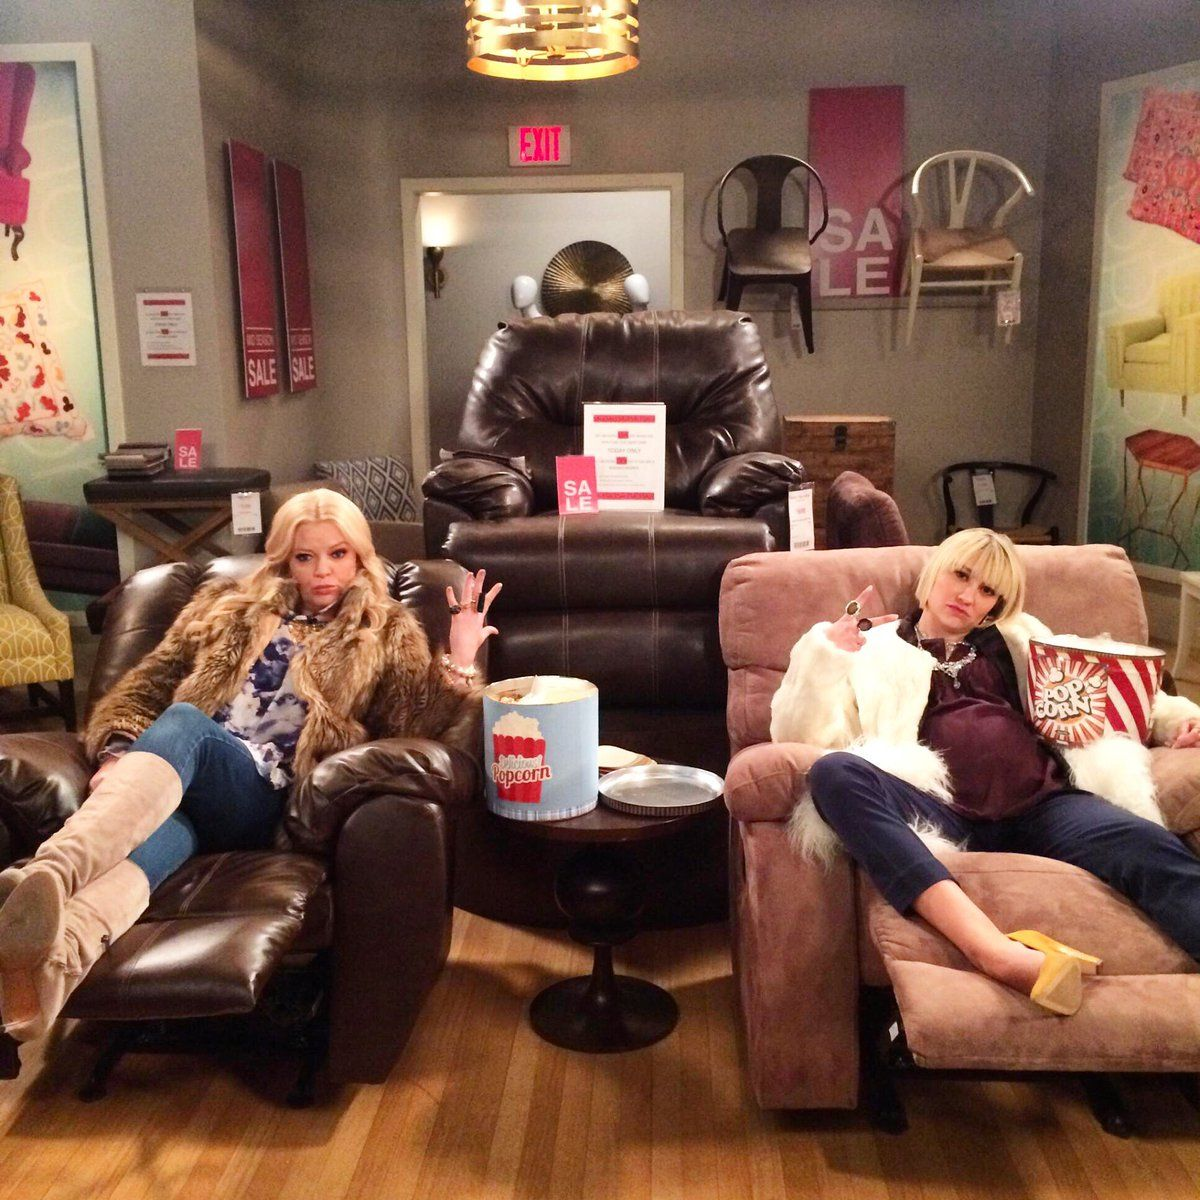 Chelsea Kane On Twitter Baby Daddy Show Baby Daddy Tv Show Baby Daddy